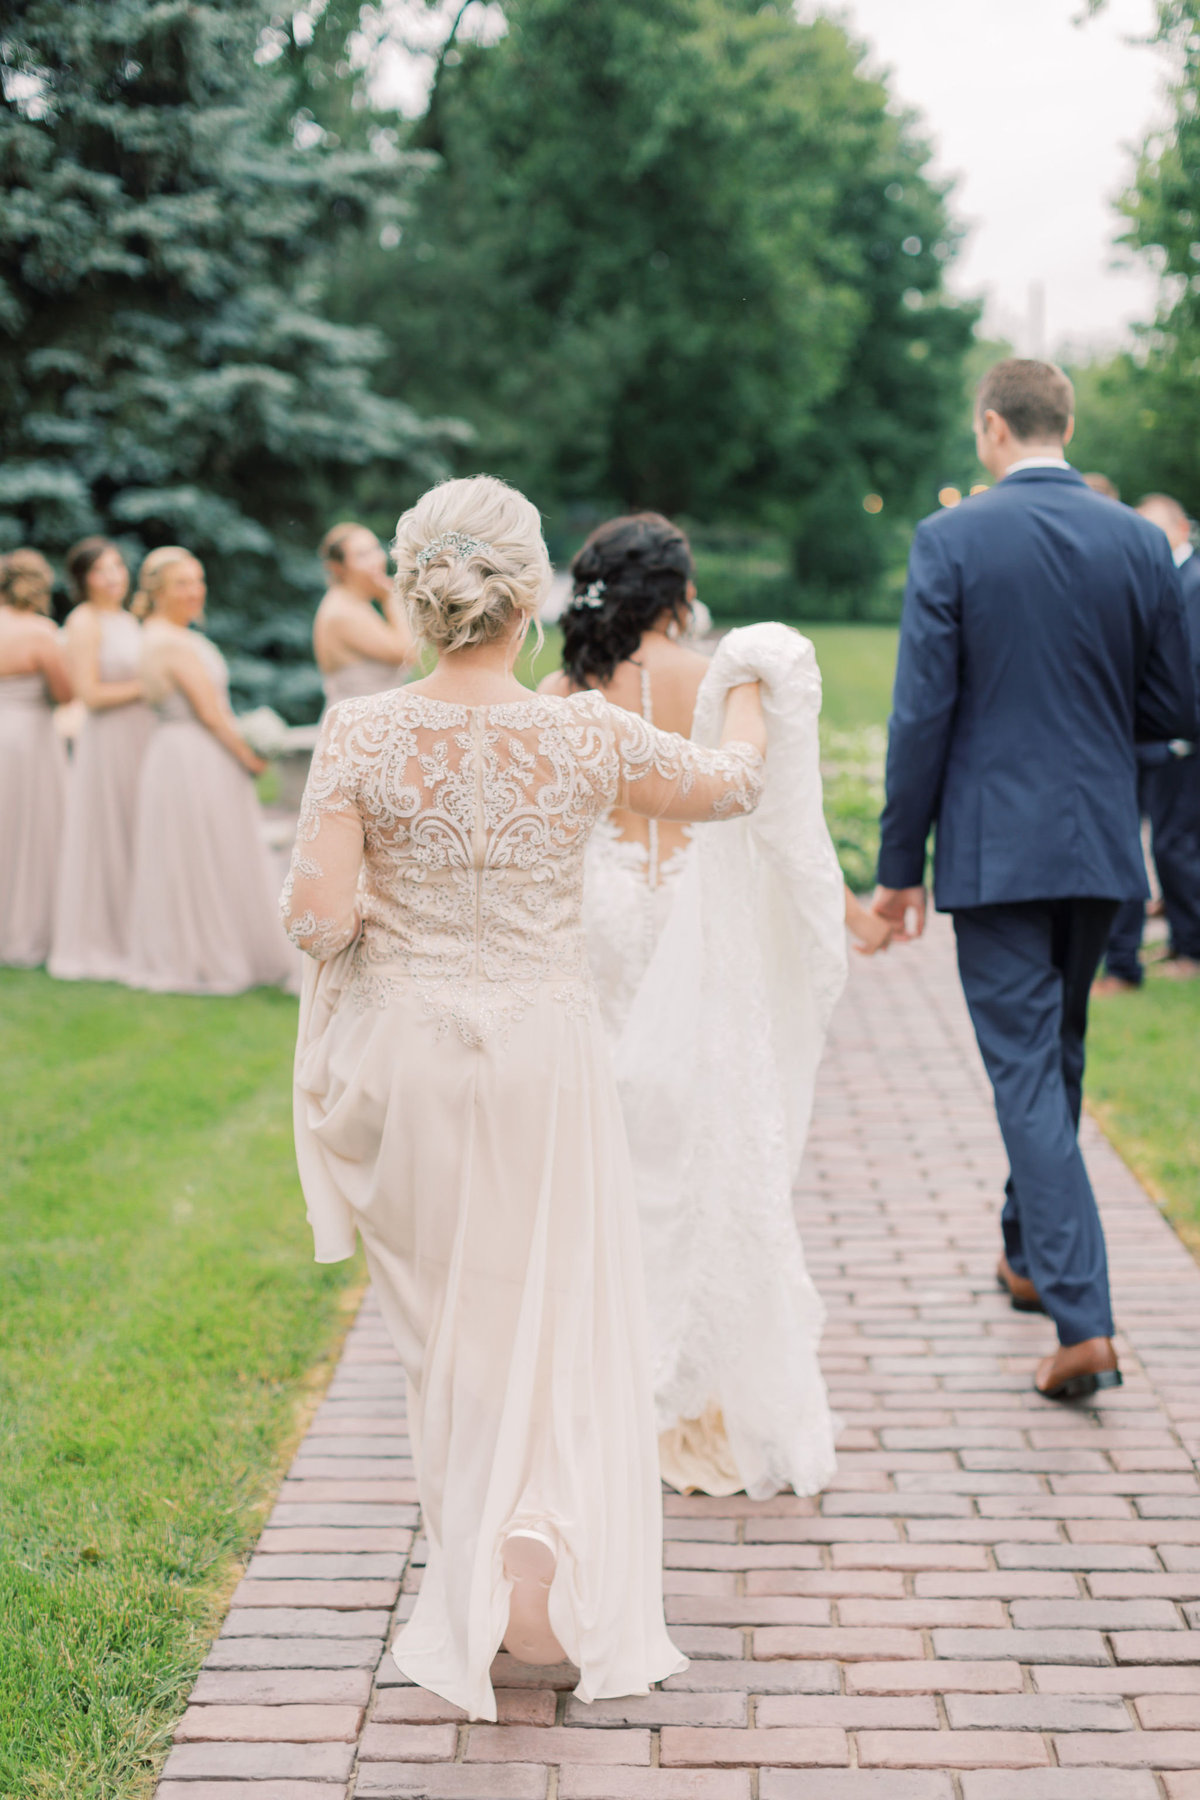 TiffaneyChildsPhotography-ChicagoWeddingPhotographer-Kirsten+Jeff-PatrickHaleyMansionWedding-55